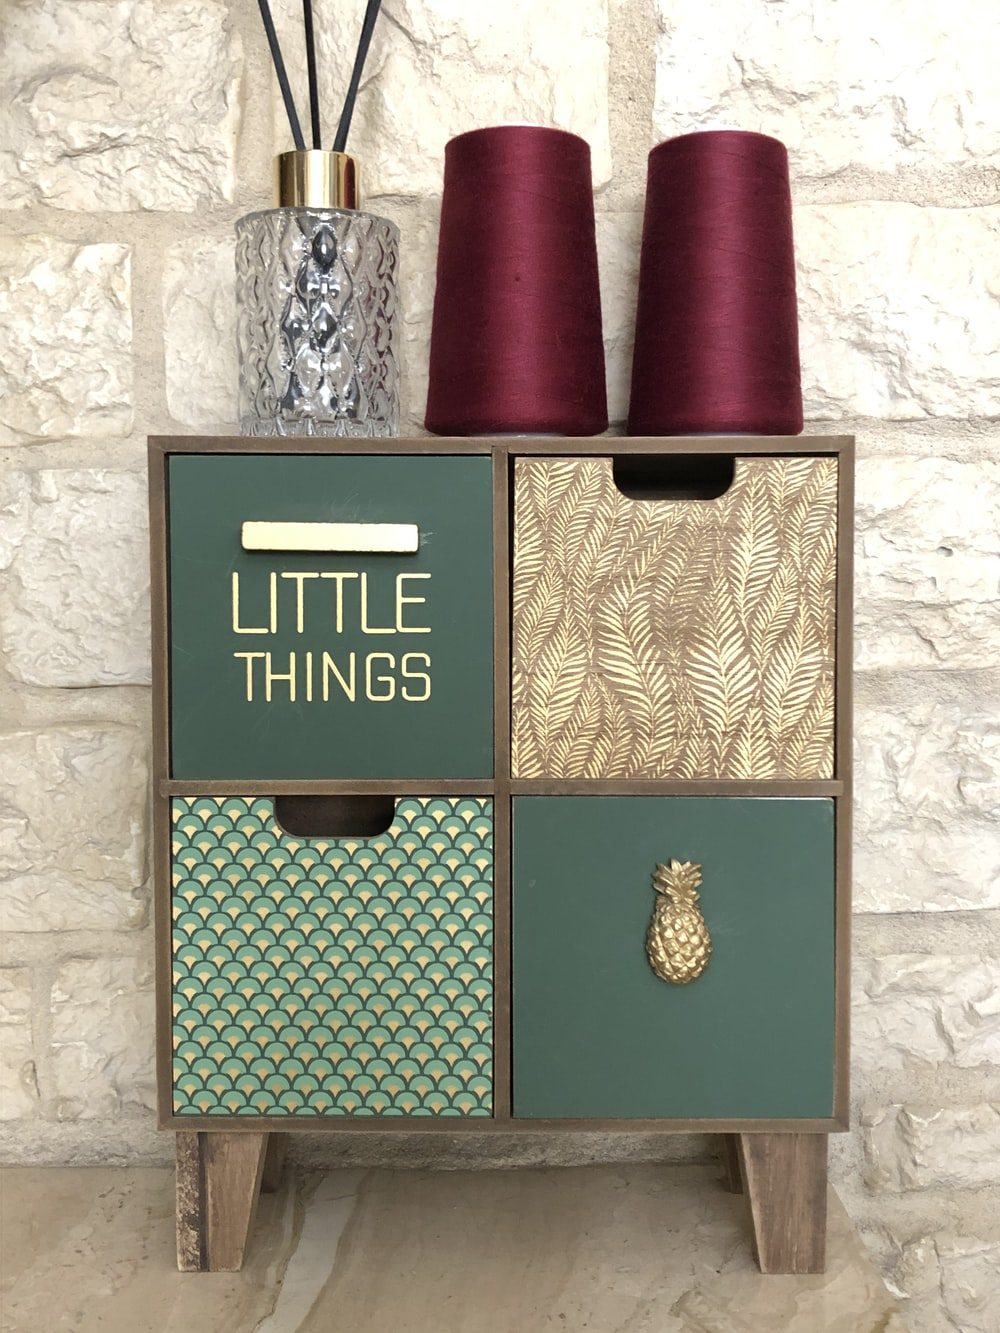 two maroon sewing threads on cube shelf